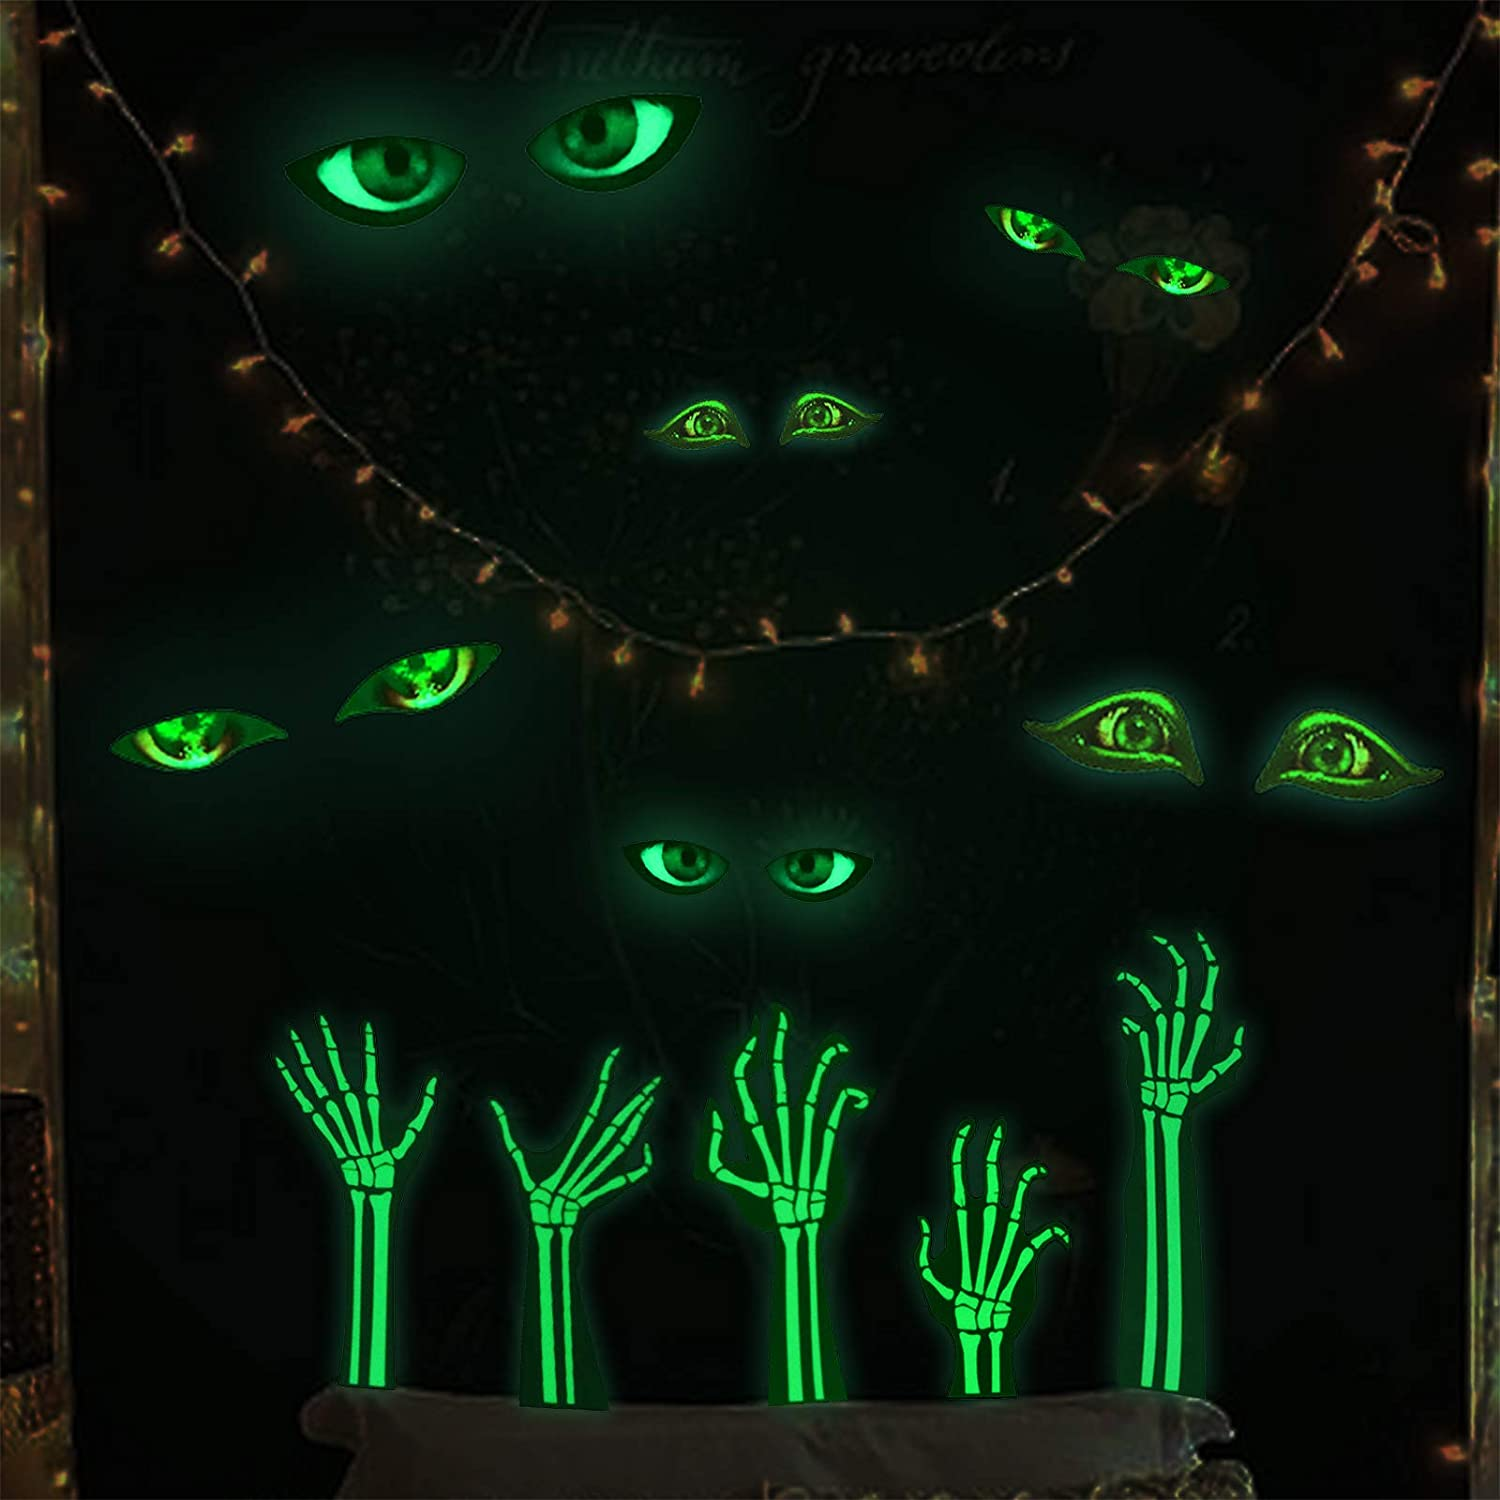 Marsway Glow in The Dark Stickers Luminous Evil Eye Wall Decor Halloween Party Supplies Room Decal Gifts for Kids (6 Evil Eyes 5 Pcs Ghost Hands)